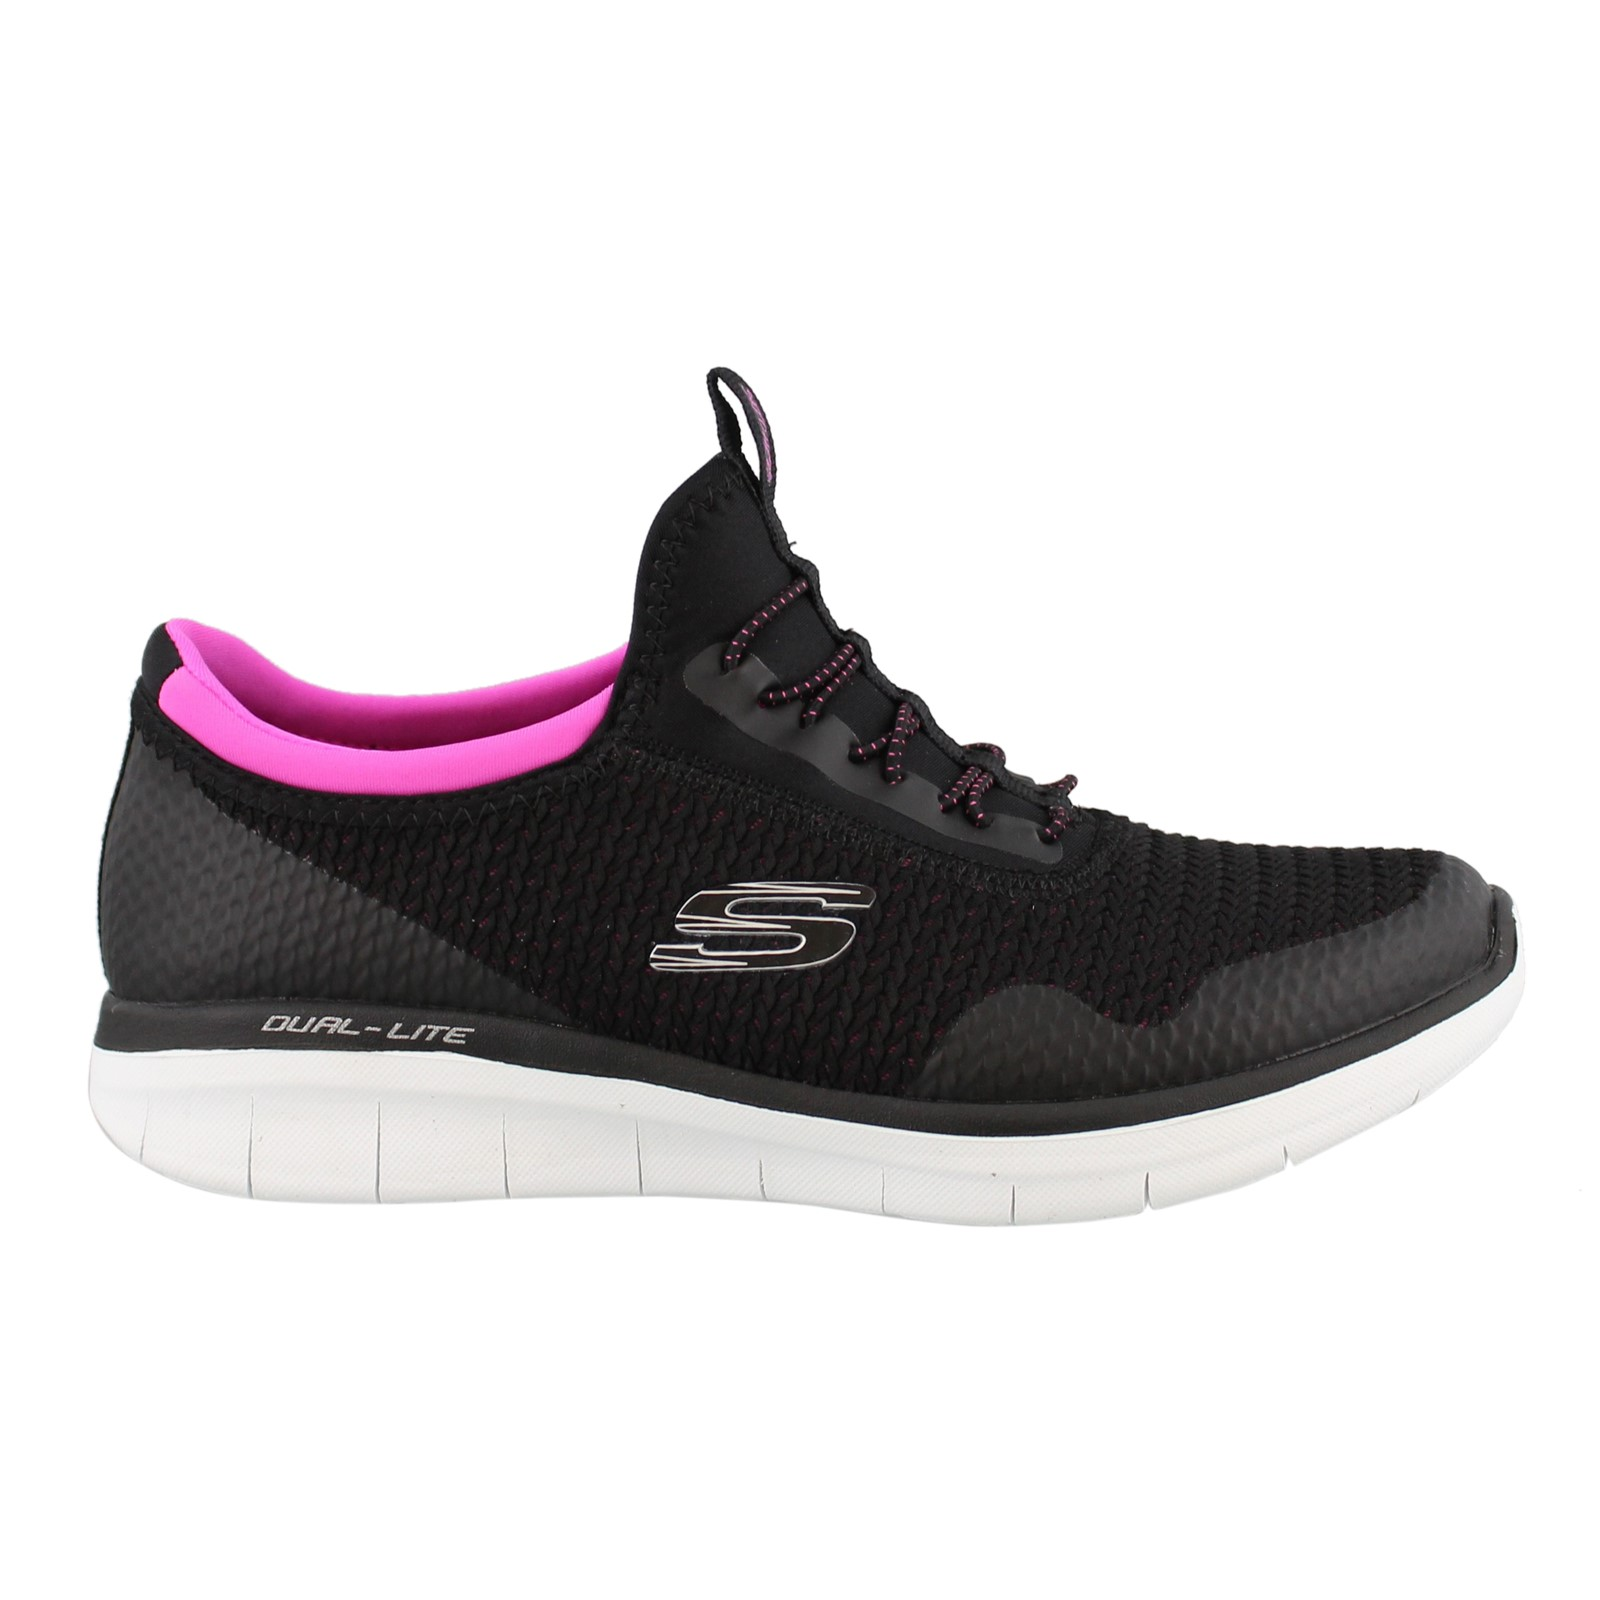 Women's Skechers, Synergy 2.0 Mirror Image Slip on Sneakers